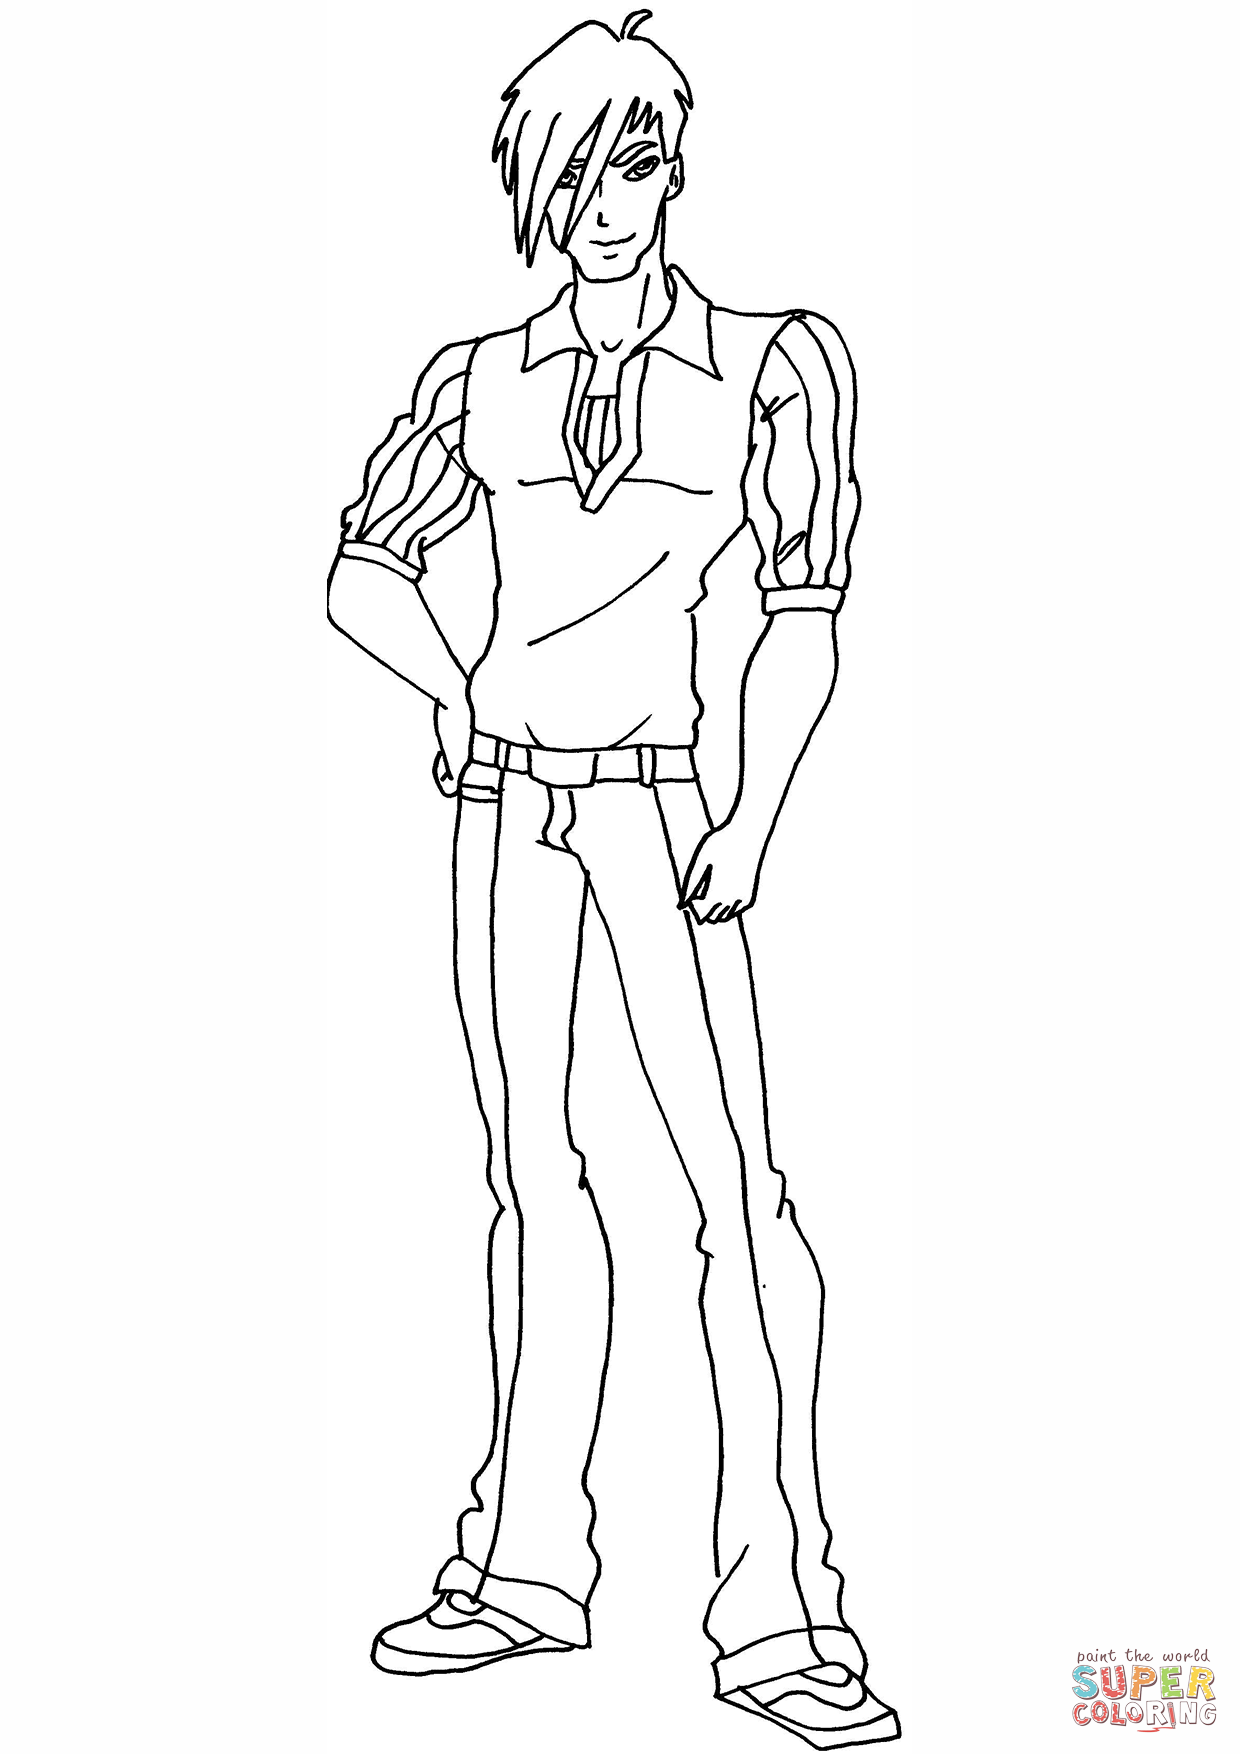 Winx Club Brandon Coloring Page Free Printable Coloring Pages Coloring Pages Free Printable Coloring Pages Paper Doll Template